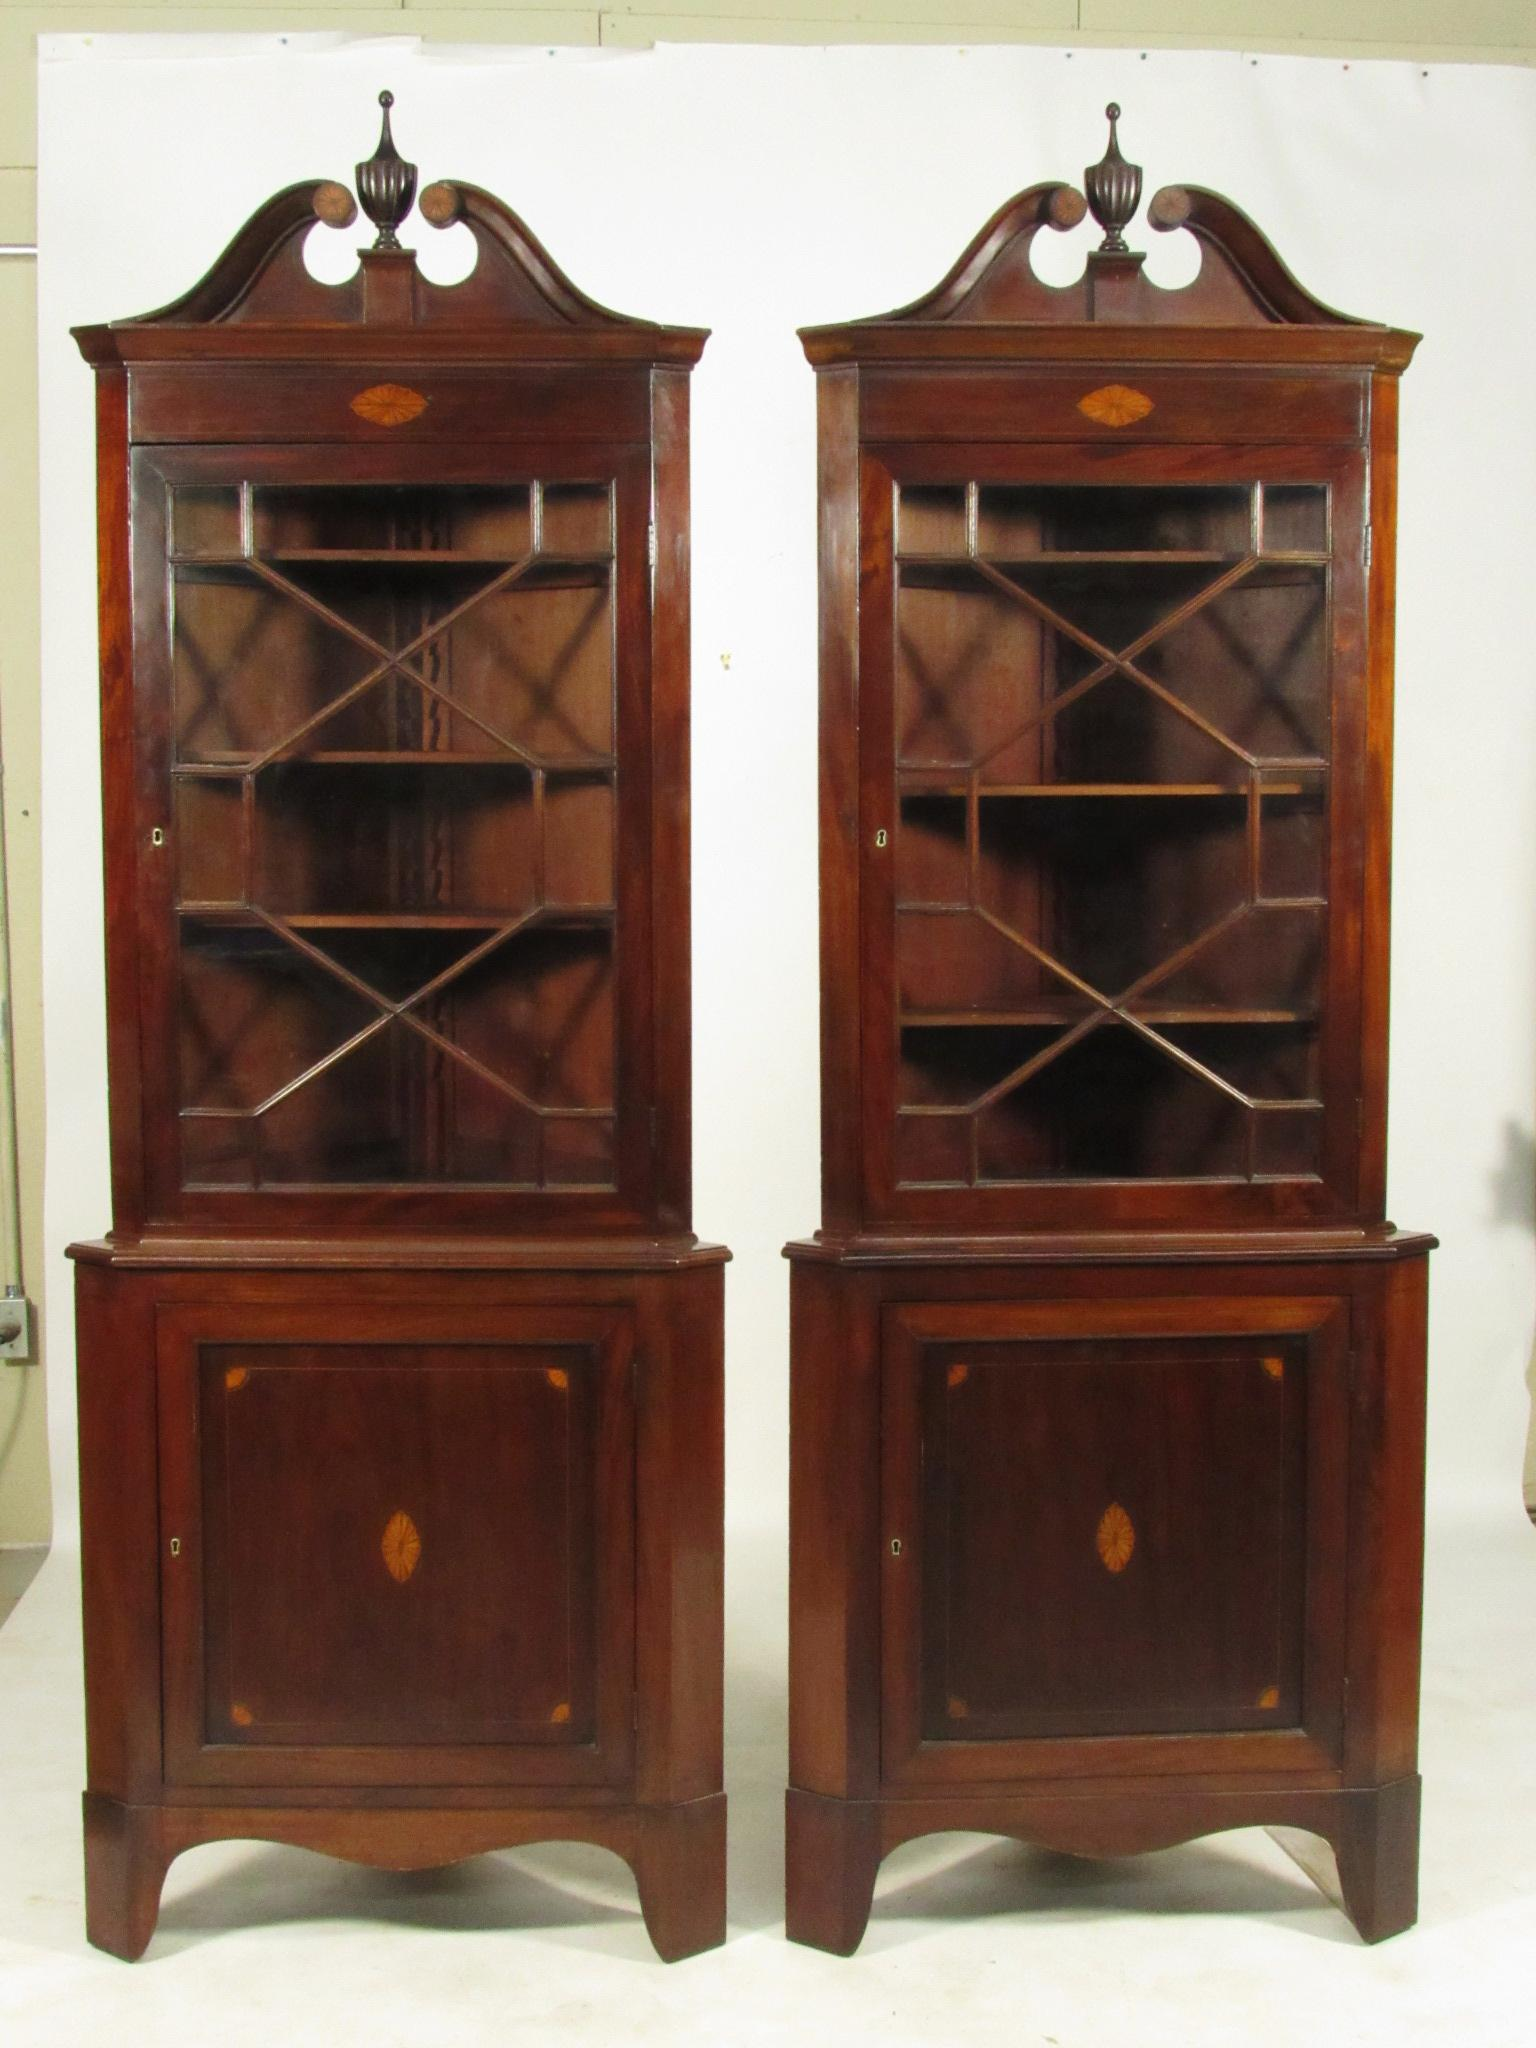 A Pair Of 19th Century Federal Style Inlaid Mahogany Corner Cabinets With  Glazed Door Upper Cabinets